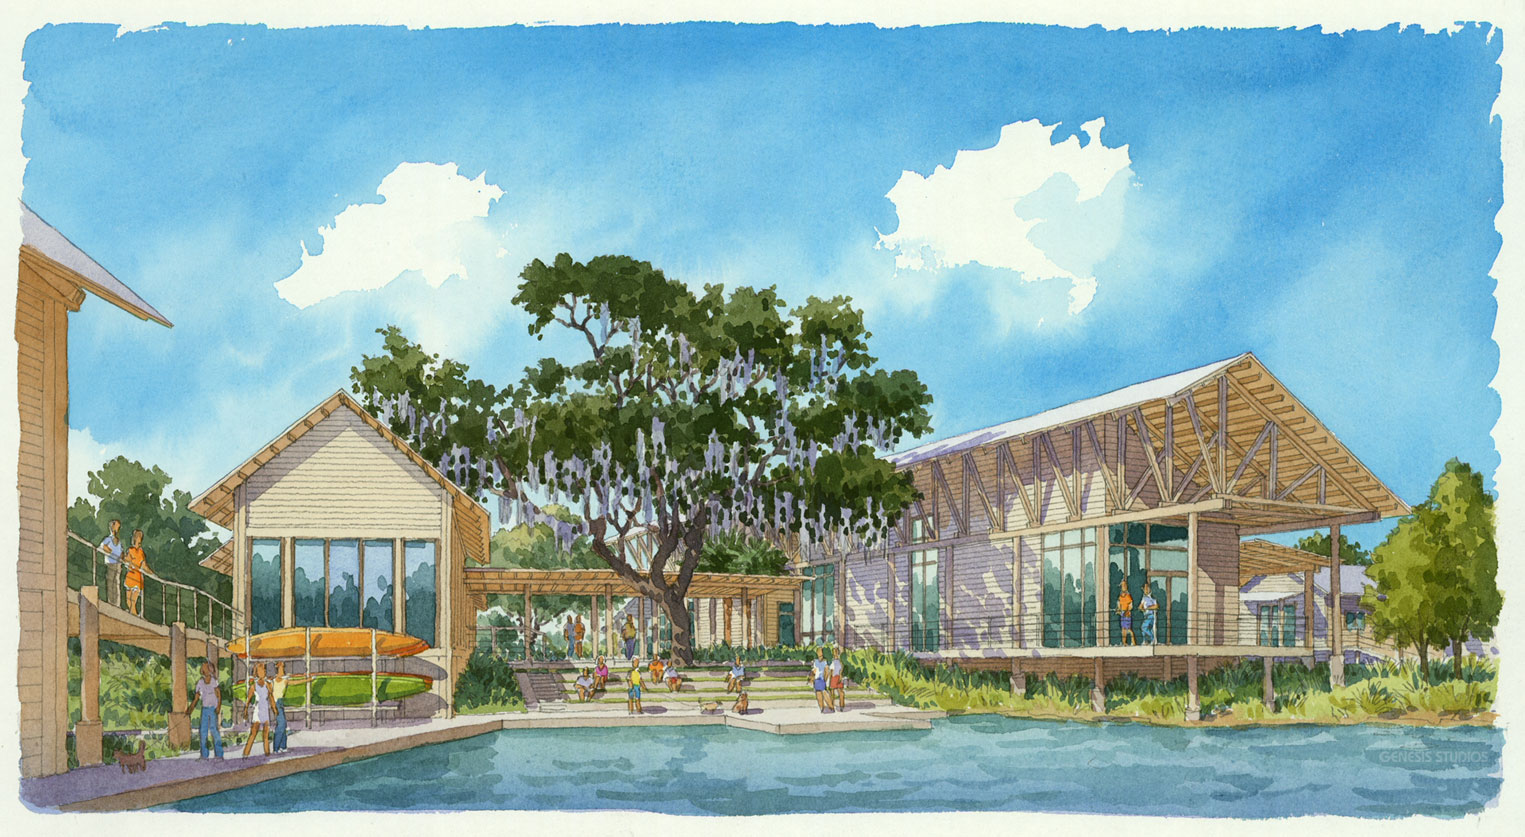 515004 Watercolor Architectural Rendering of Palmetto Bluff Ampitheature for Crescent Communities